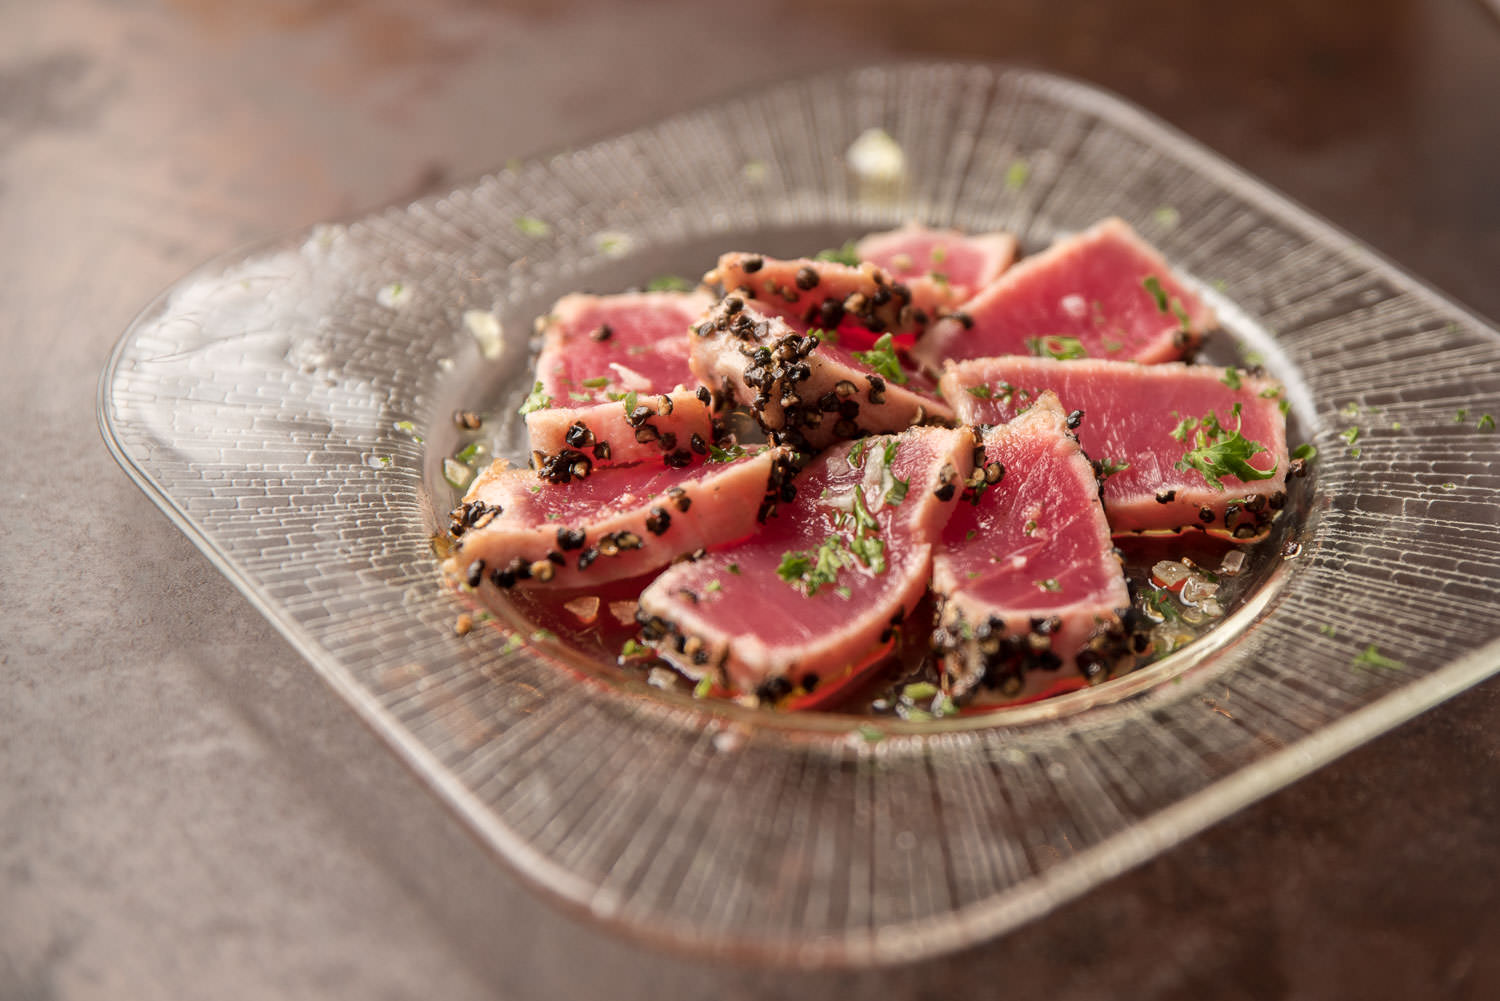 Atún a la plancha - Fresh seared tuna w/ground black pepper